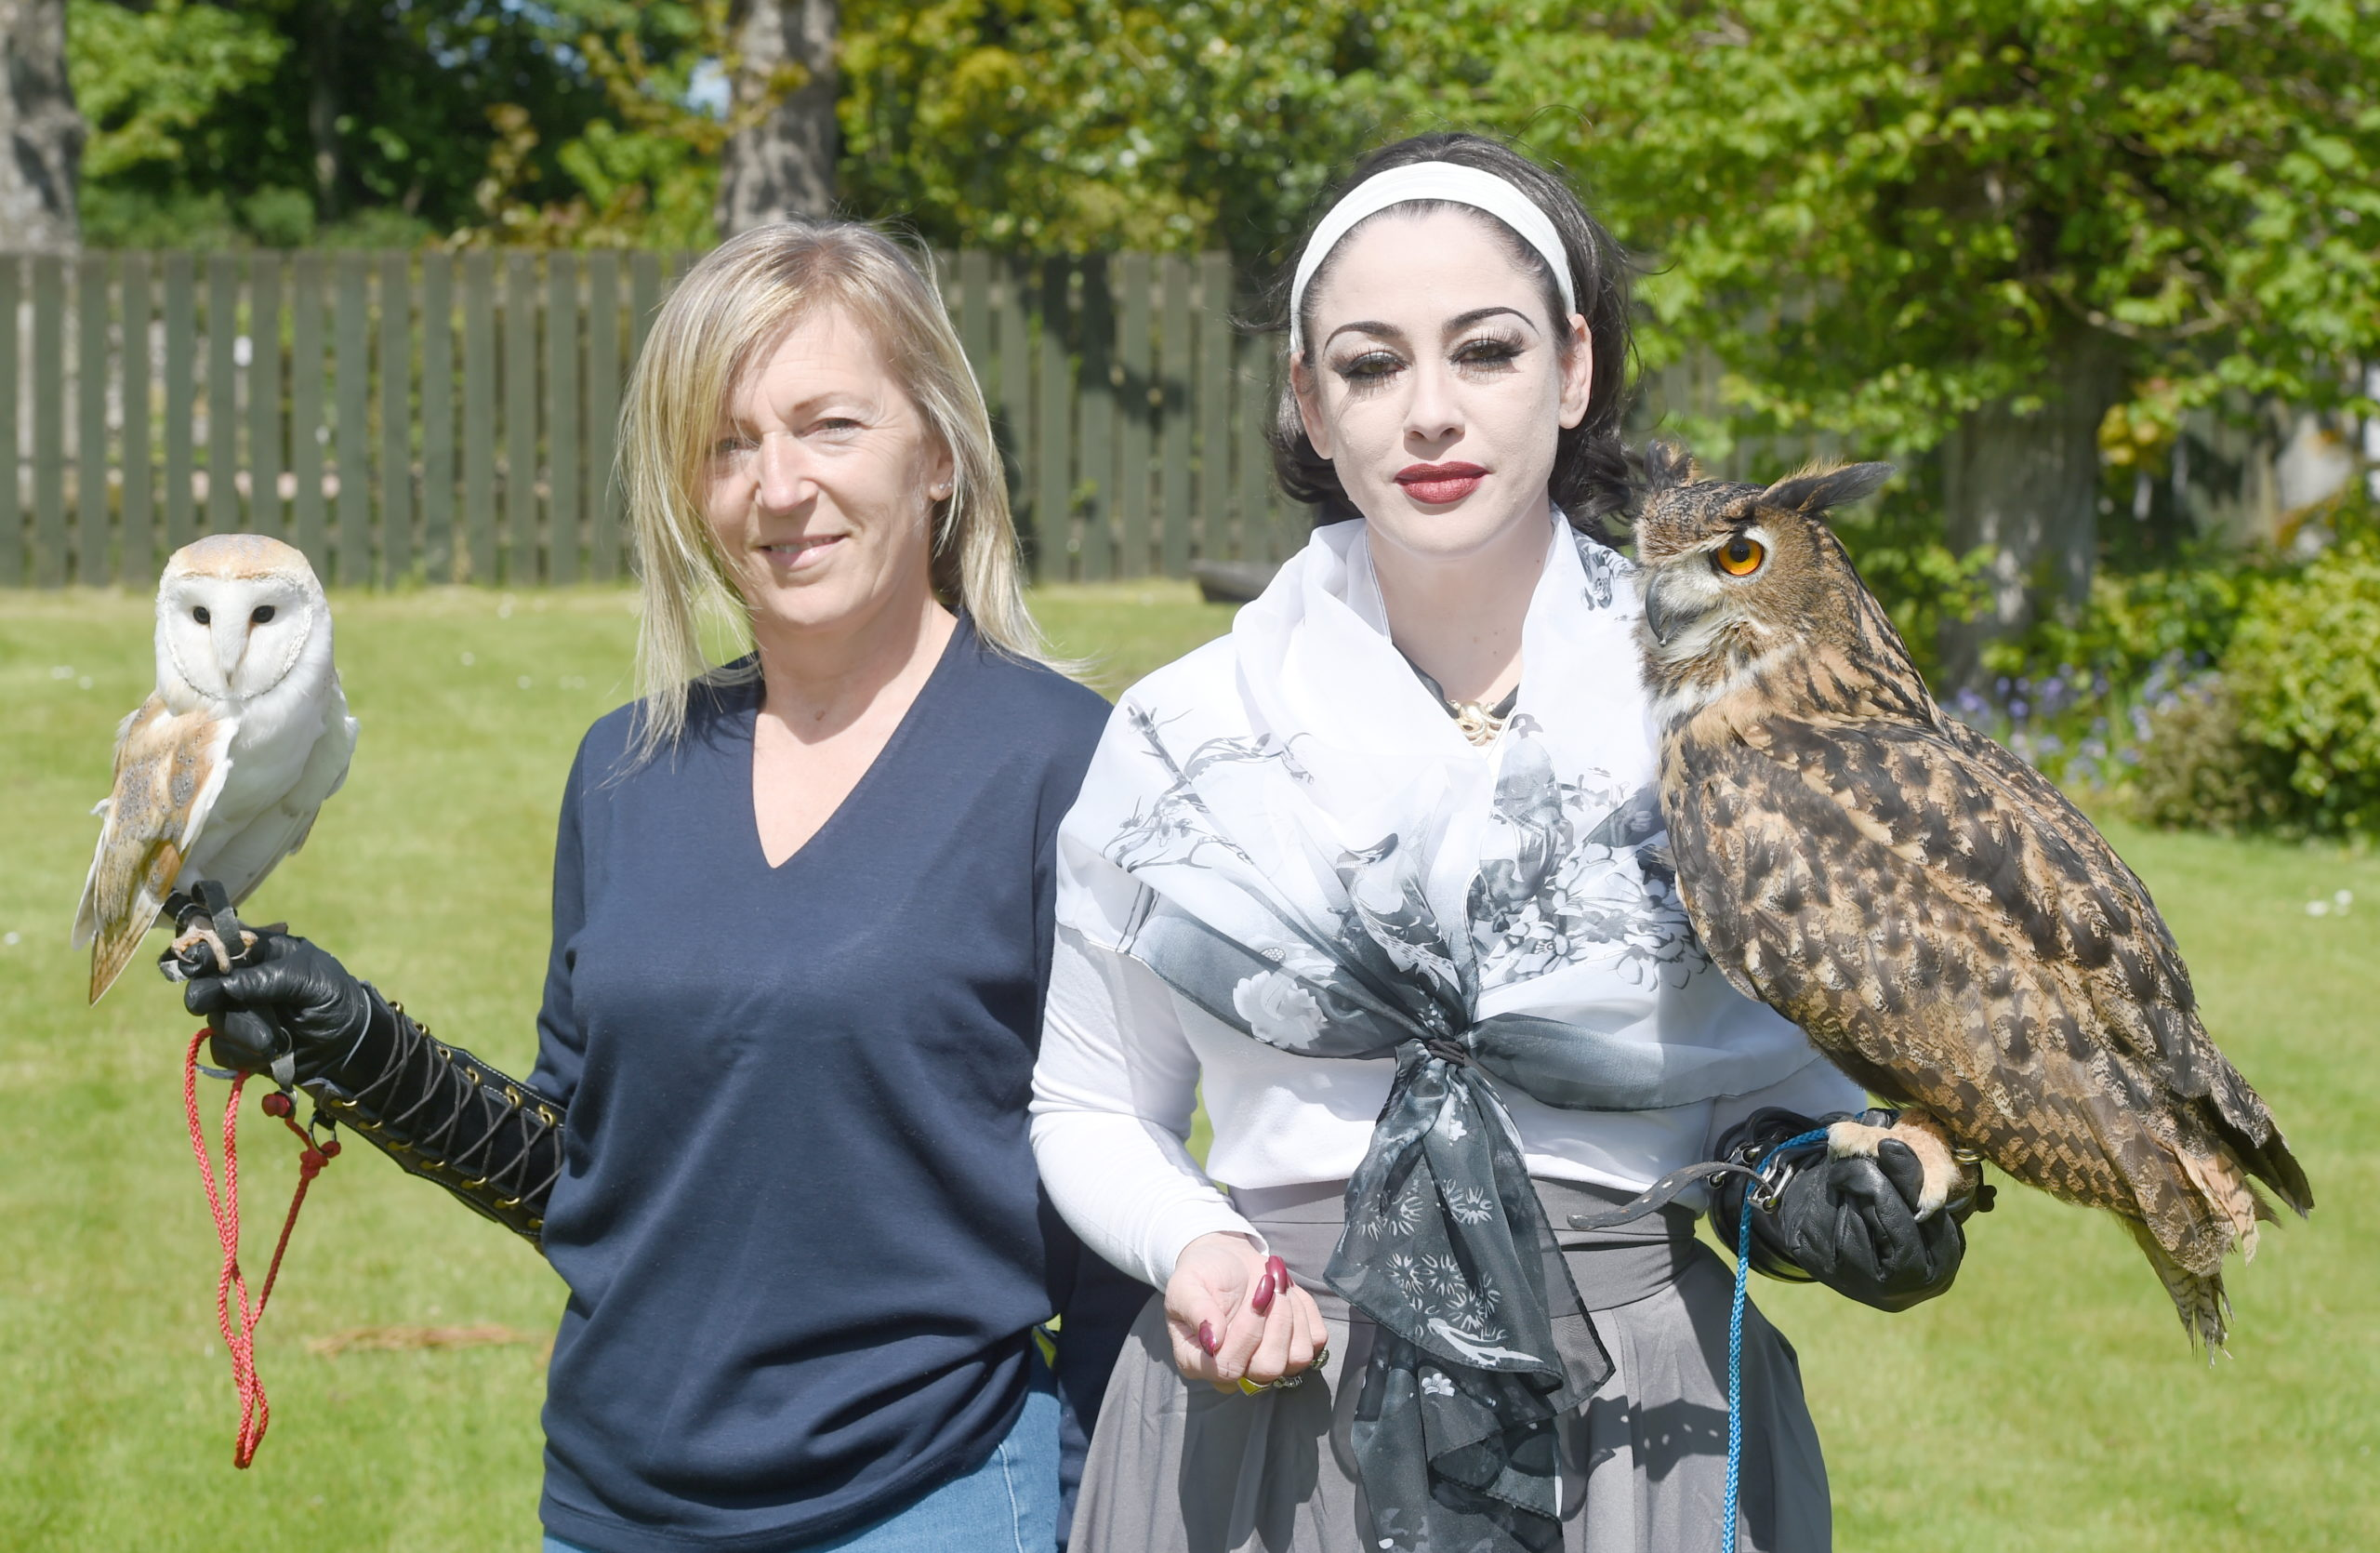 Jane Wilson and Hadassah Broscova-Righletti of the Blue Highlands Bird of Prey Rescue Centre in Brora with 'Bella' the barn owl and 'Cherlock' a Eurasian Eagle Owl. Picture by Sandy McCook.